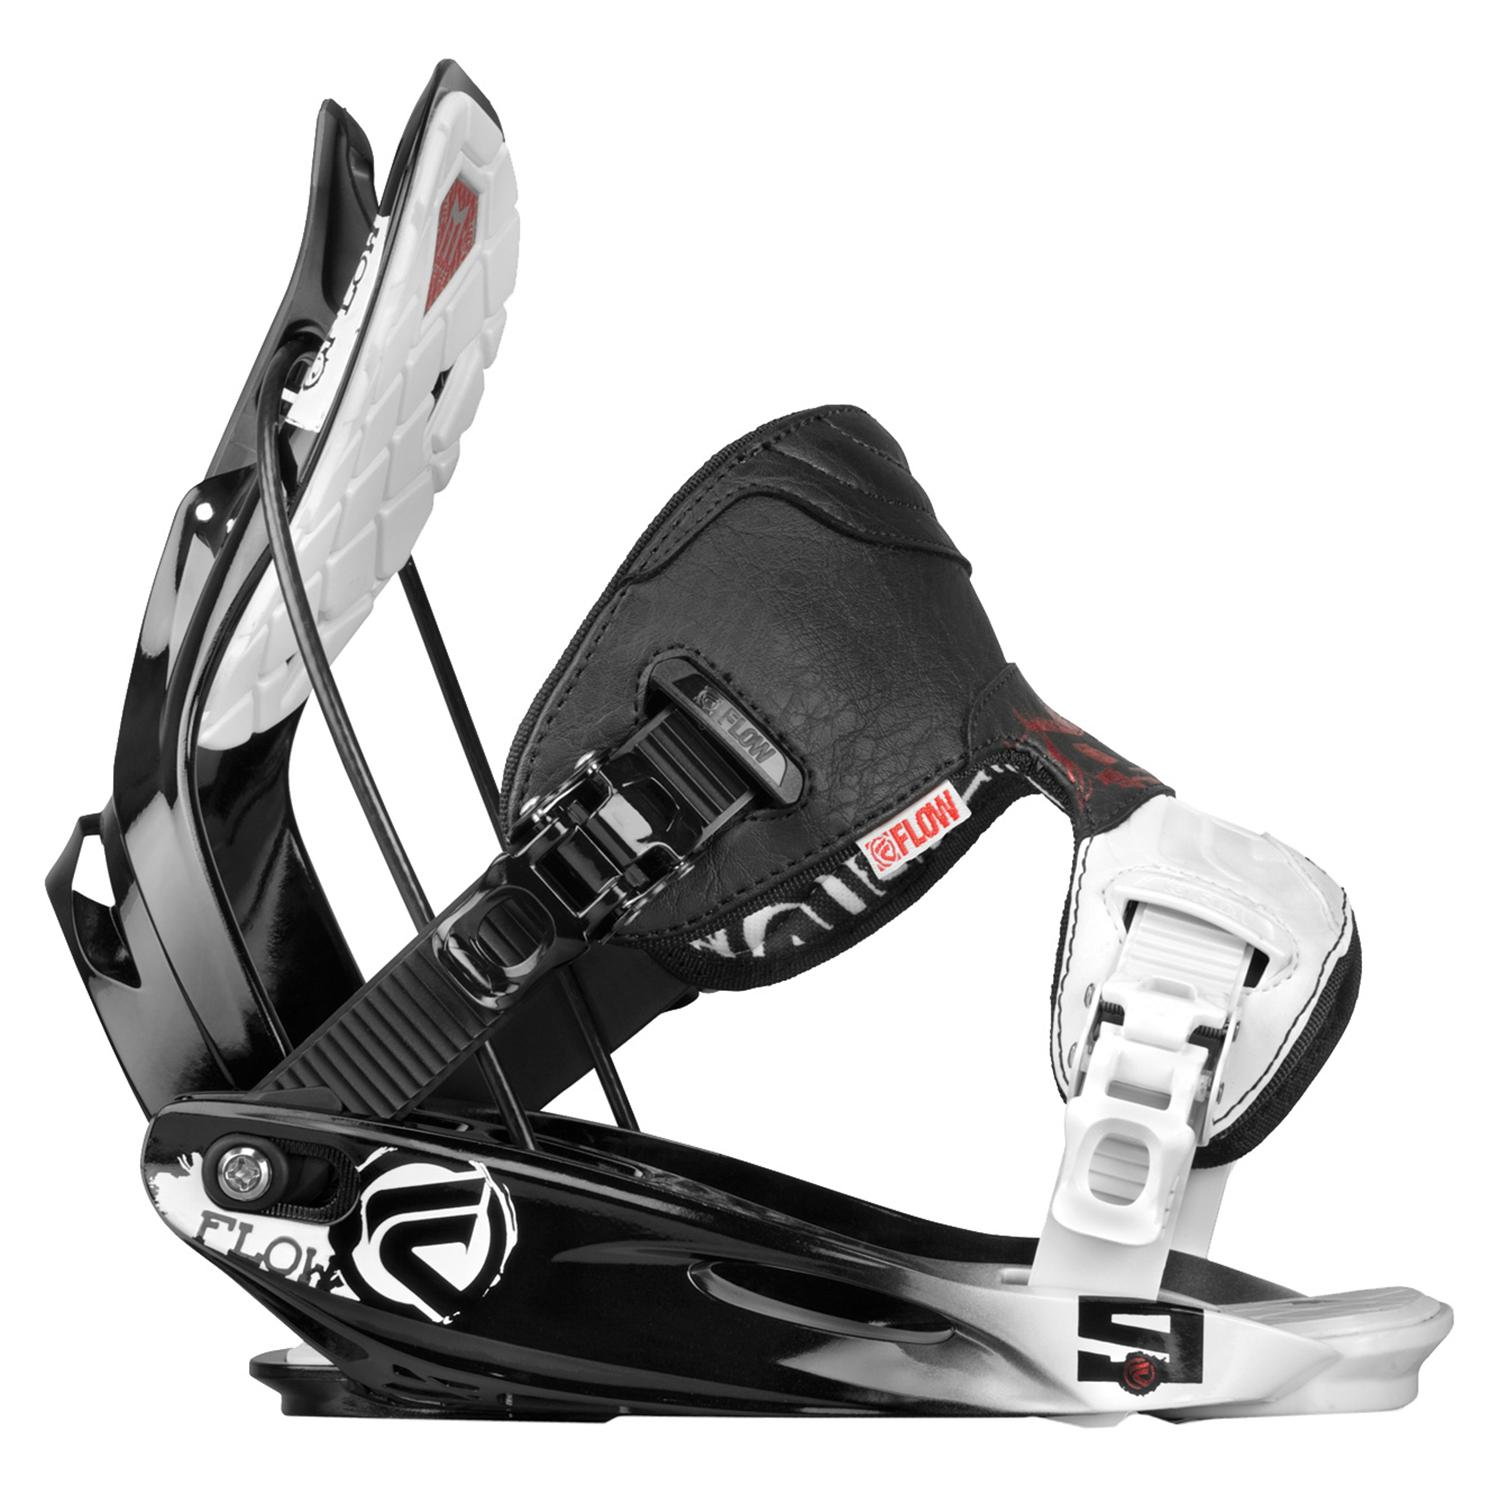 Flow Era Rocker Snowboard + Flow M9 Snowboard Bindings